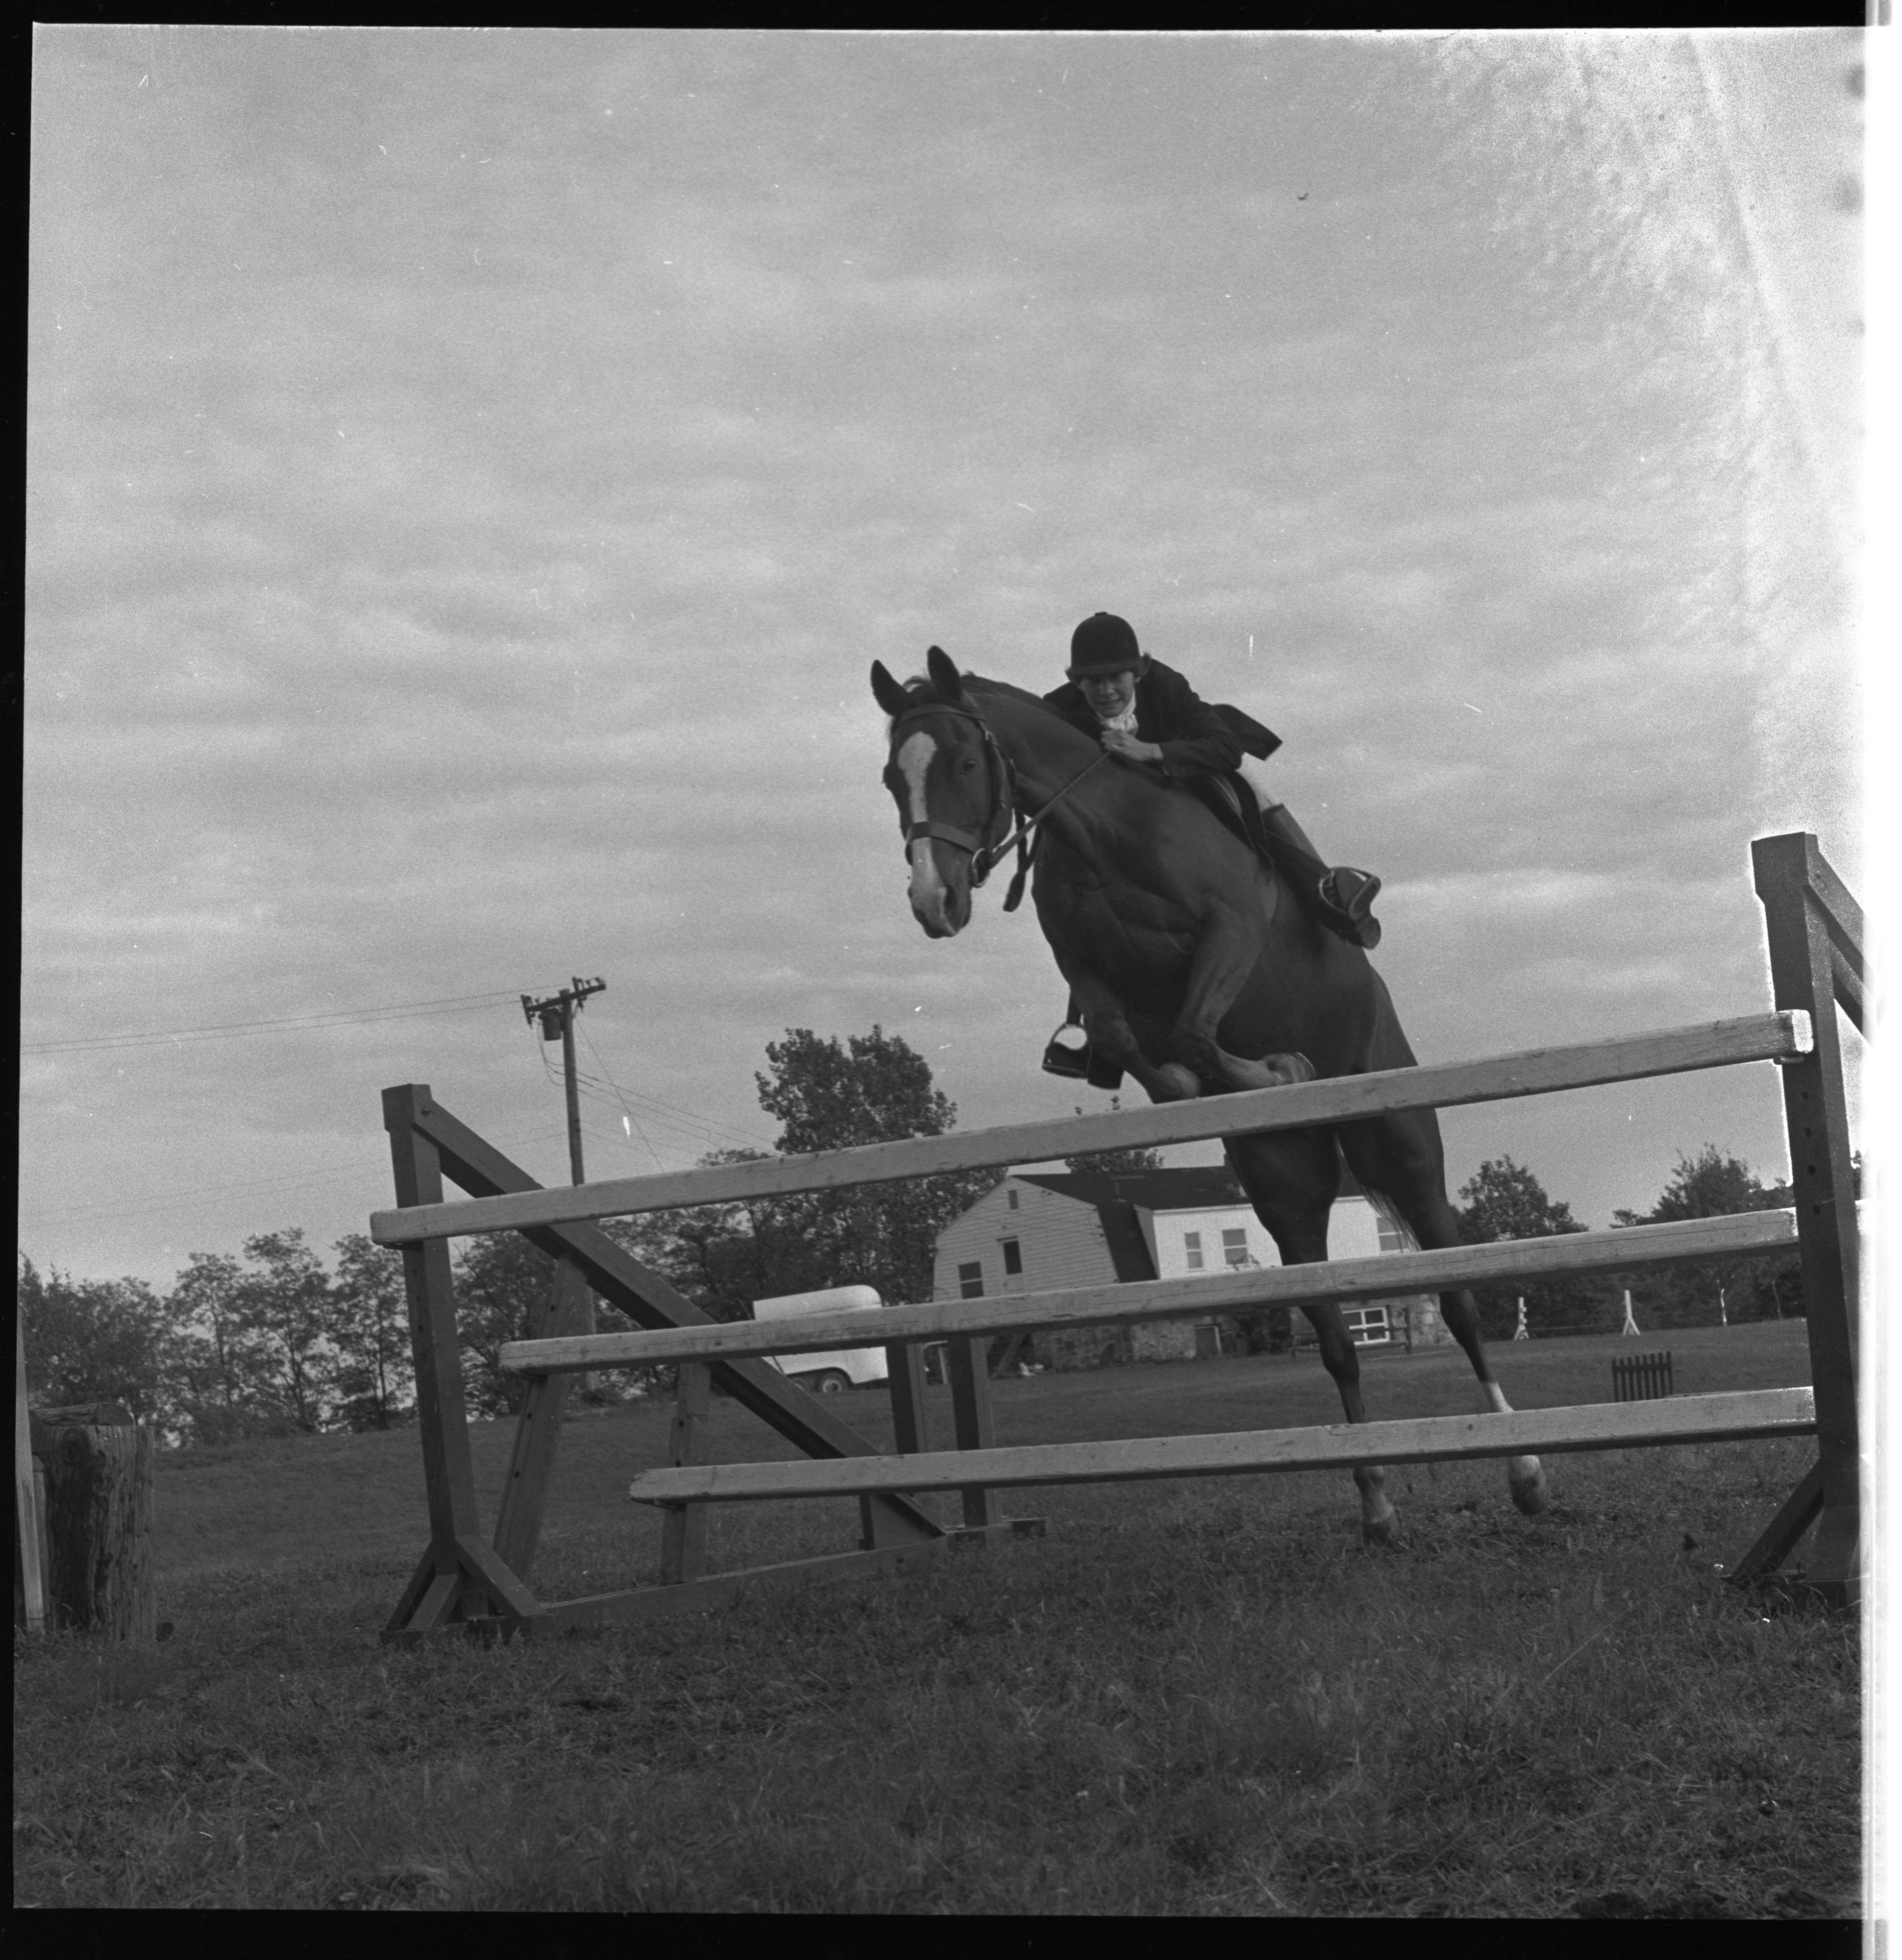 Jane Berkeley & Forward, Everett Riding School - November 1962 image